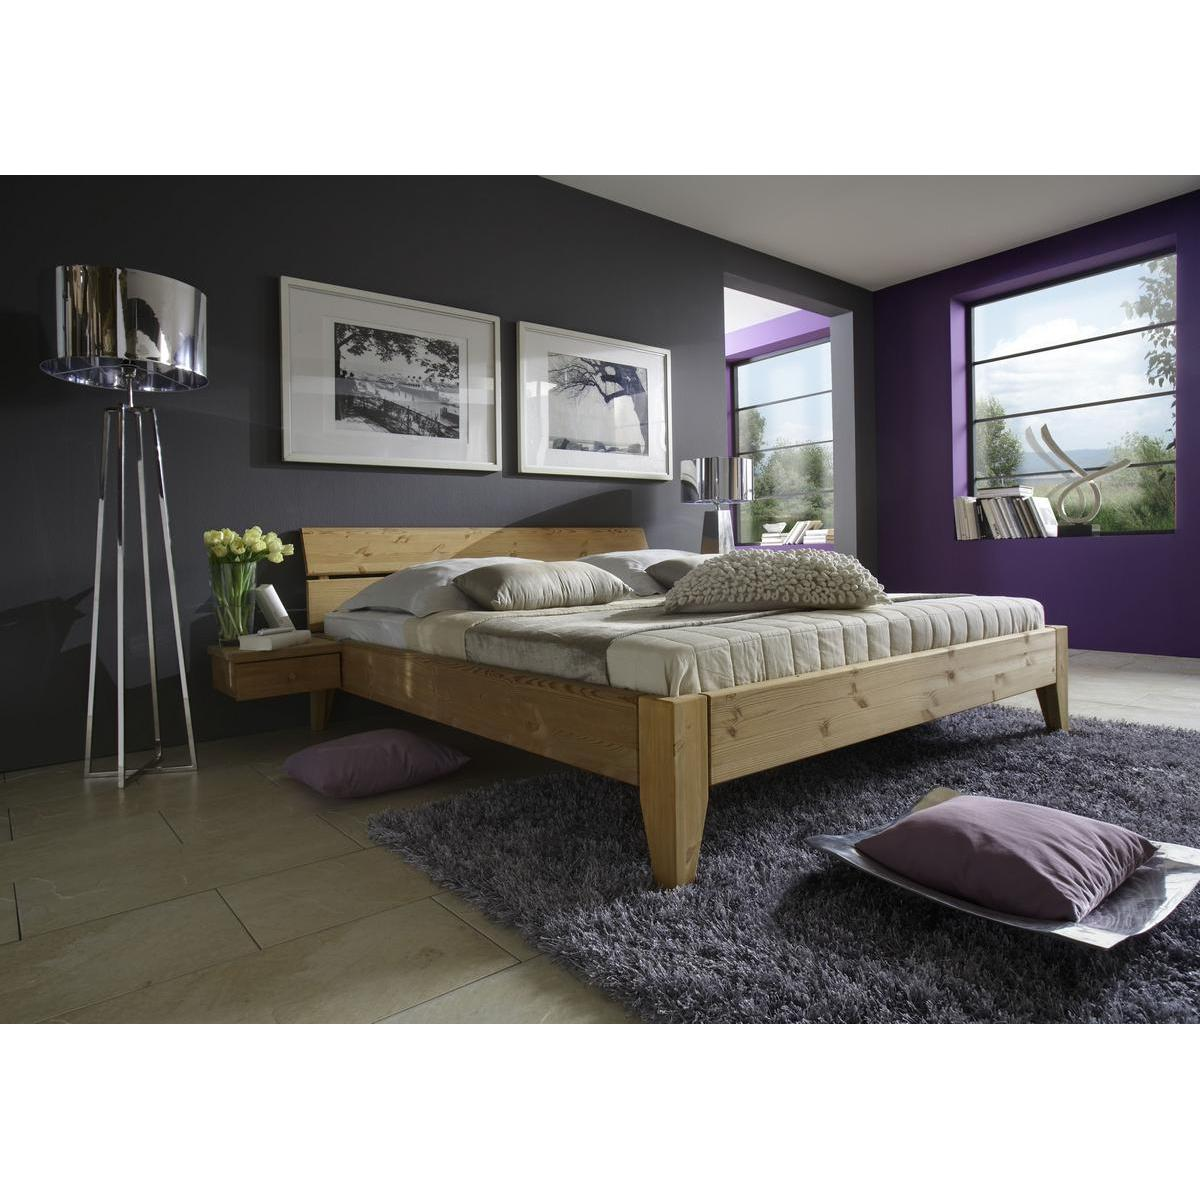 massivholz bett 180x200 easy sleep kiefer massiv gelaugt ge lt 9218 92 5. Black Bedroom Furniture Sets. Home Design Ideas